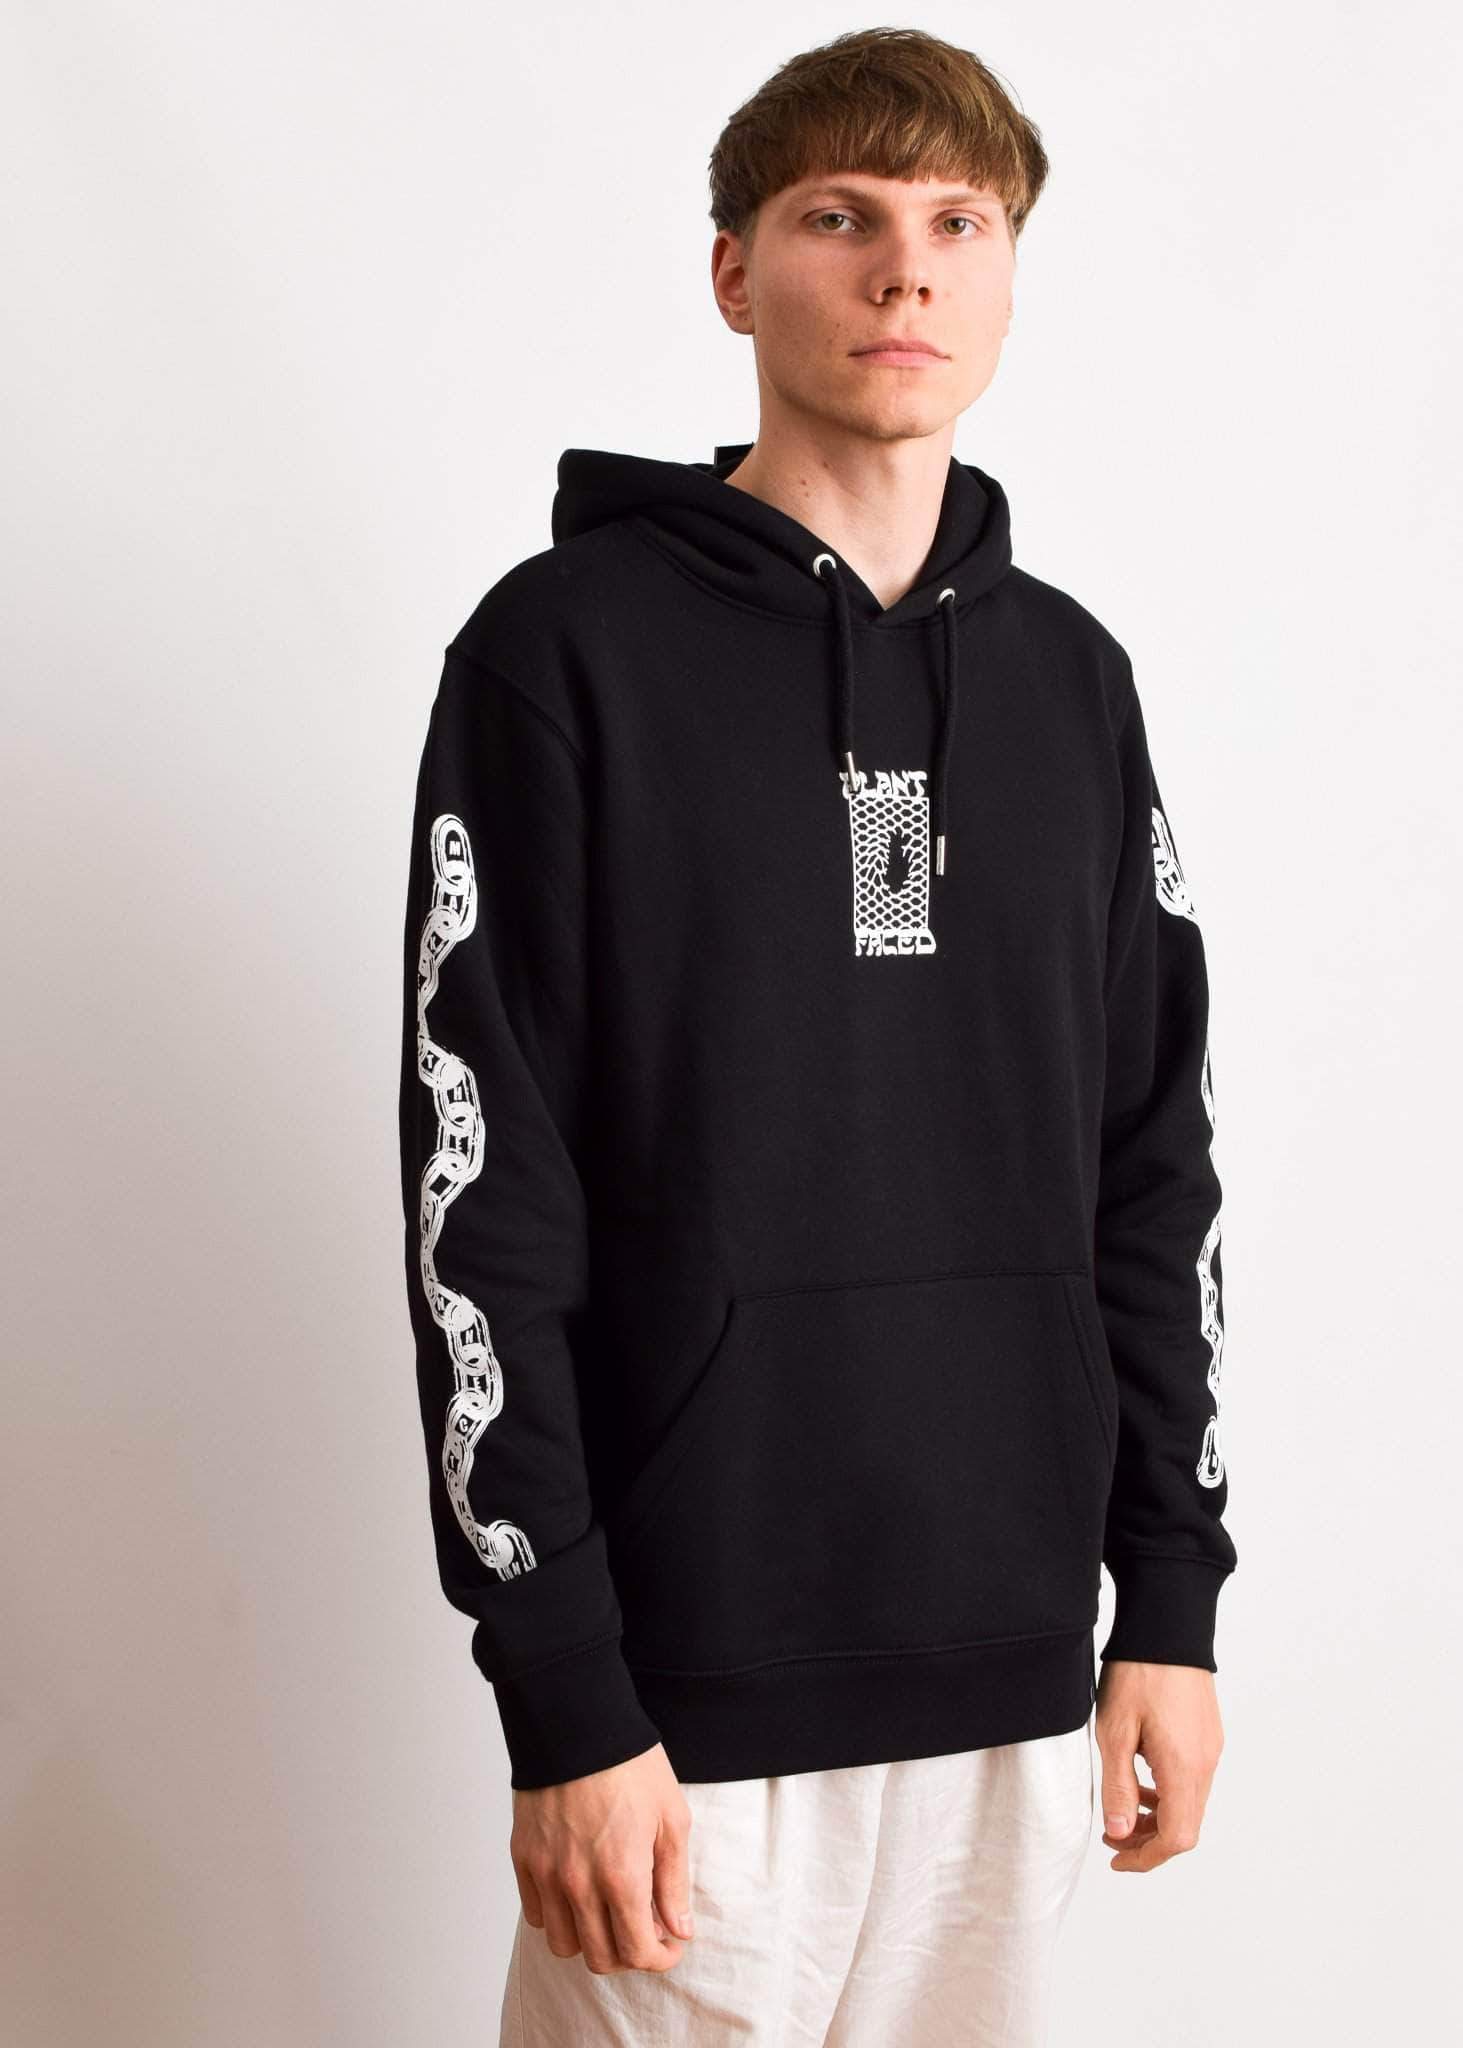 PLANT FACED CLOTHING: Hoodies - Make The Connection Hoodie - Black - ORGANIC X RECYCLED, Vegan Clothing